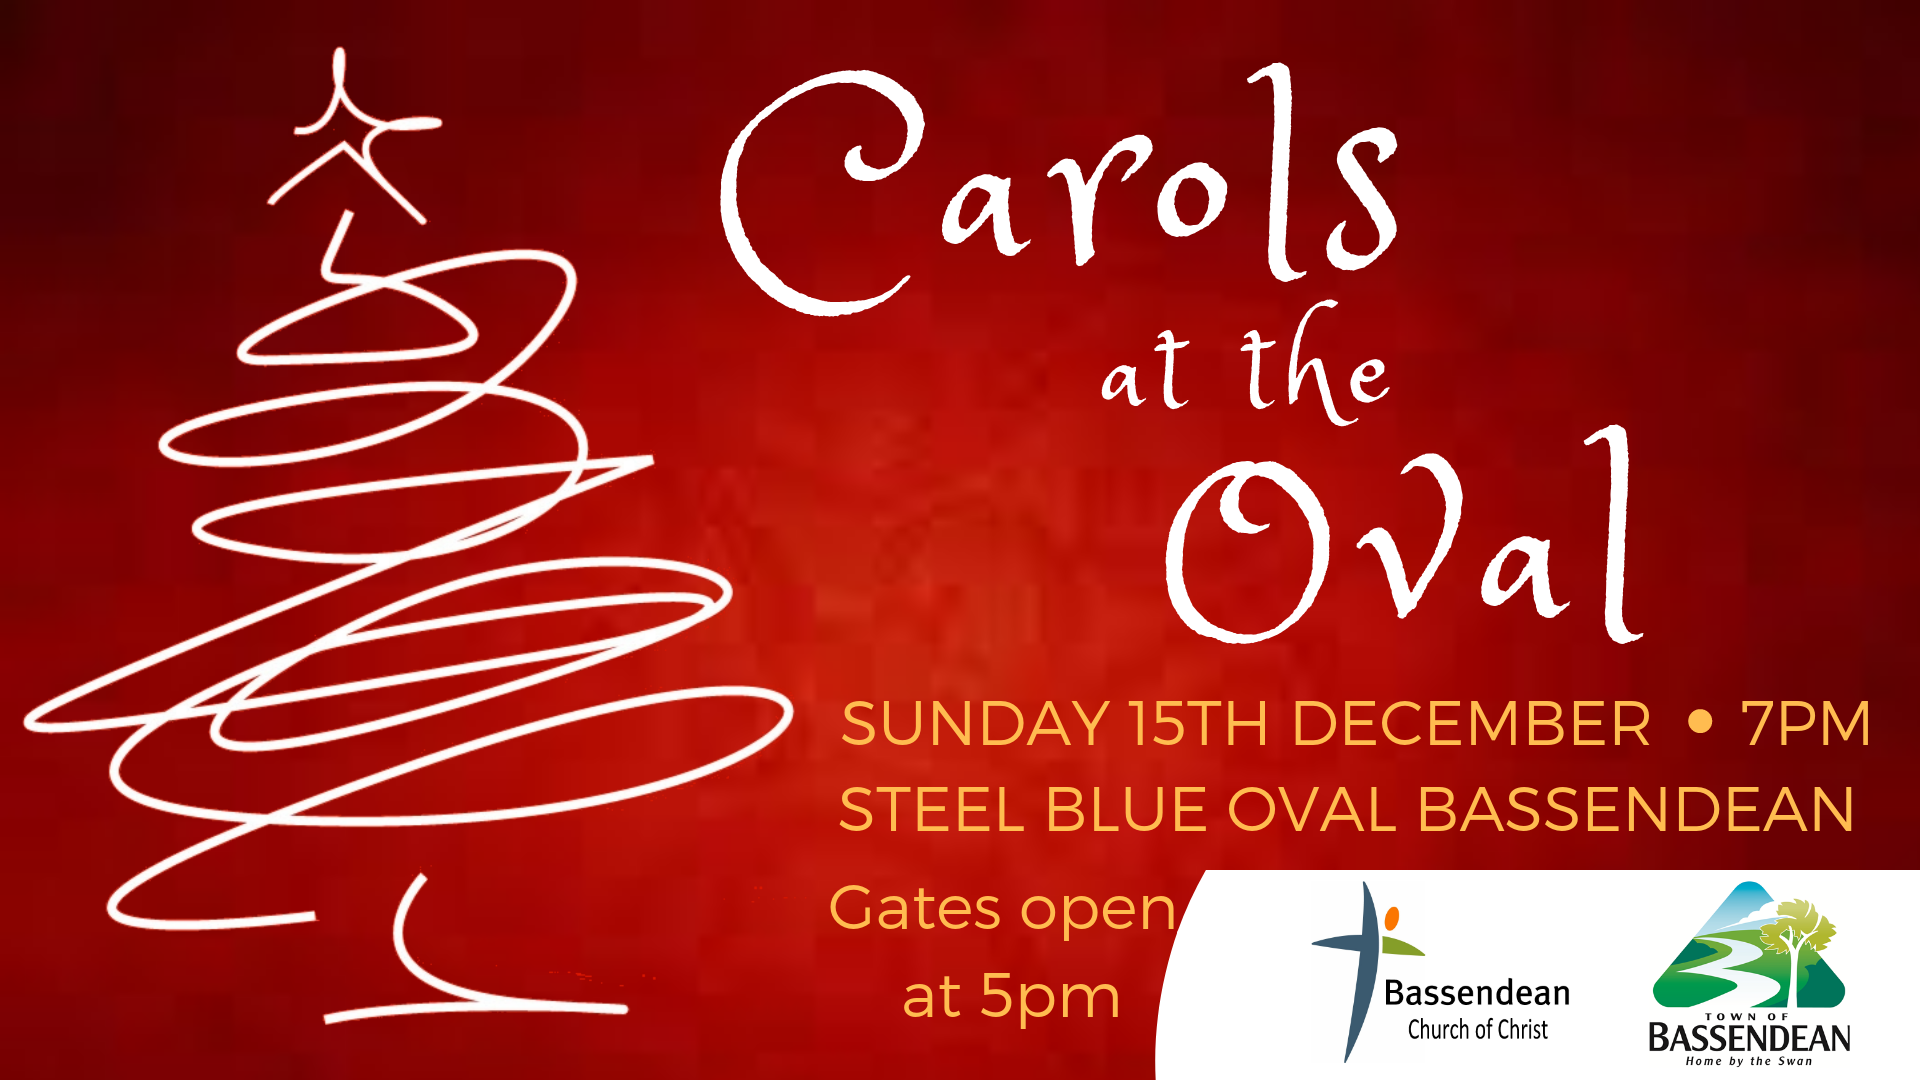 Carols at the Oval